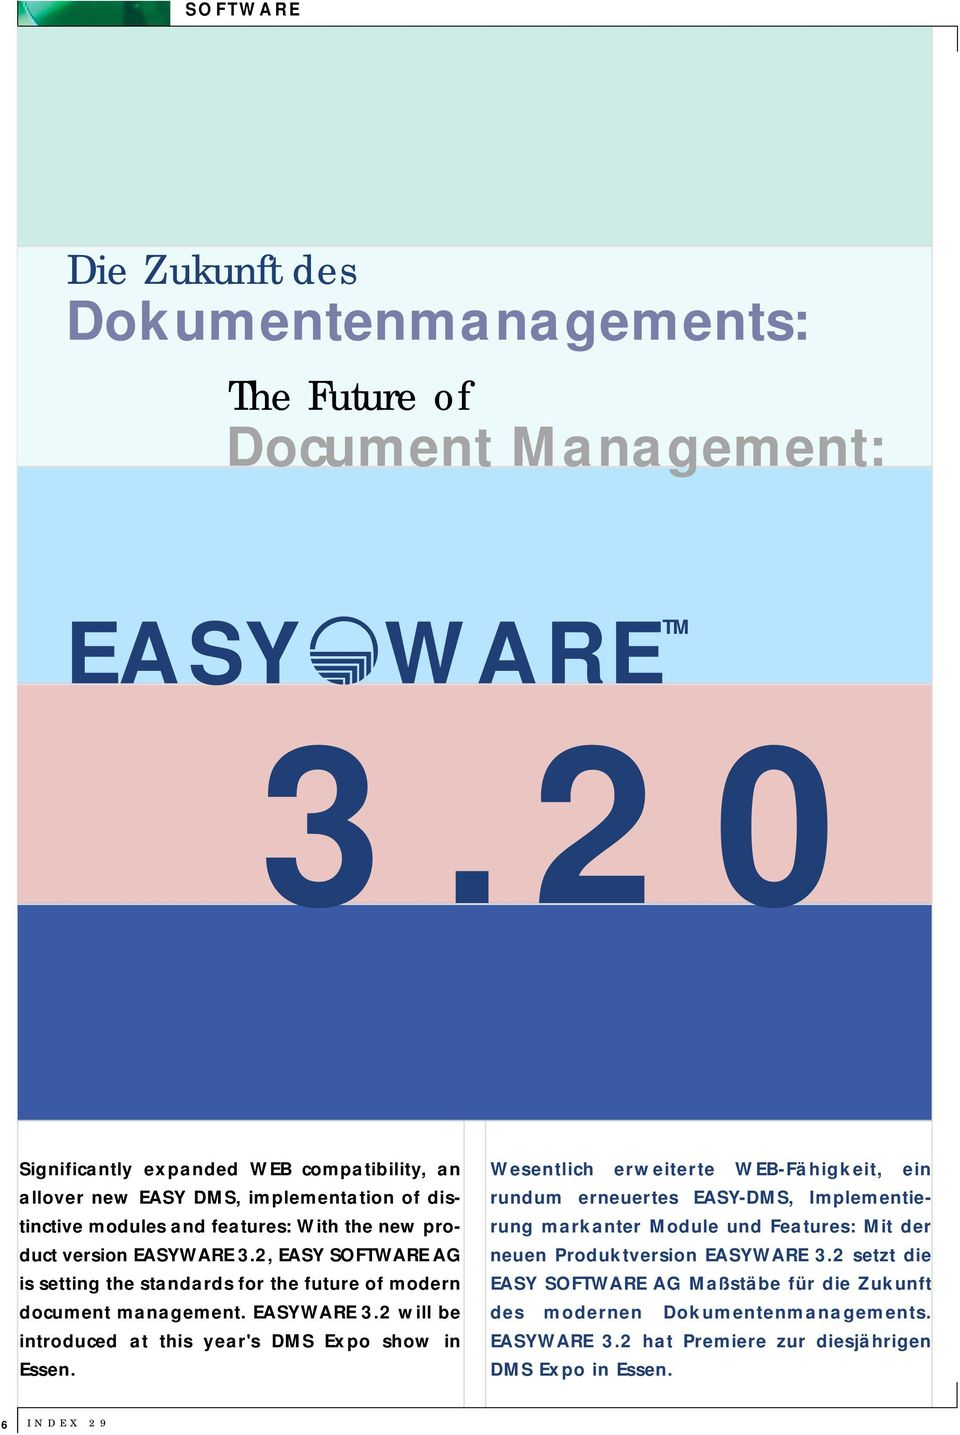 2, EASY SOFTWARE AG is setting the standards for the future of modern document management. EASYWARE 3.2 will be introduced at this year's DMS Expo show in Essen.